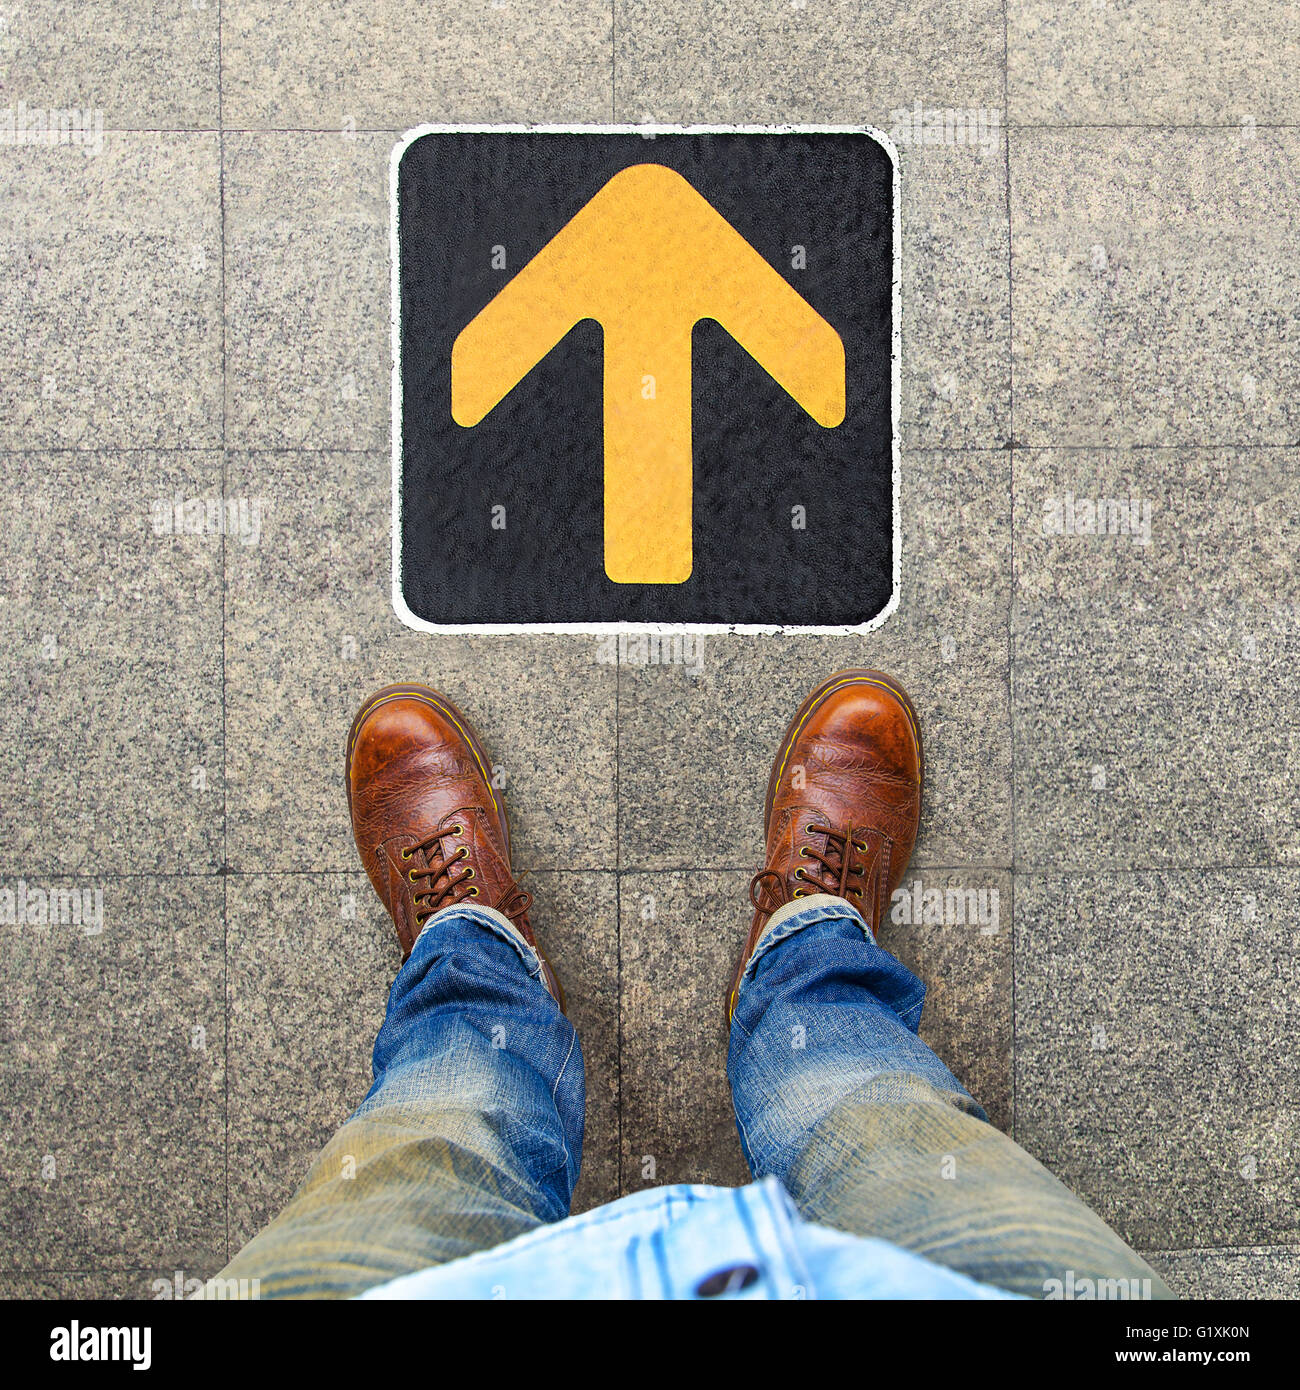 Yellow arrow to indicate the travel of the arrow - Stock Image